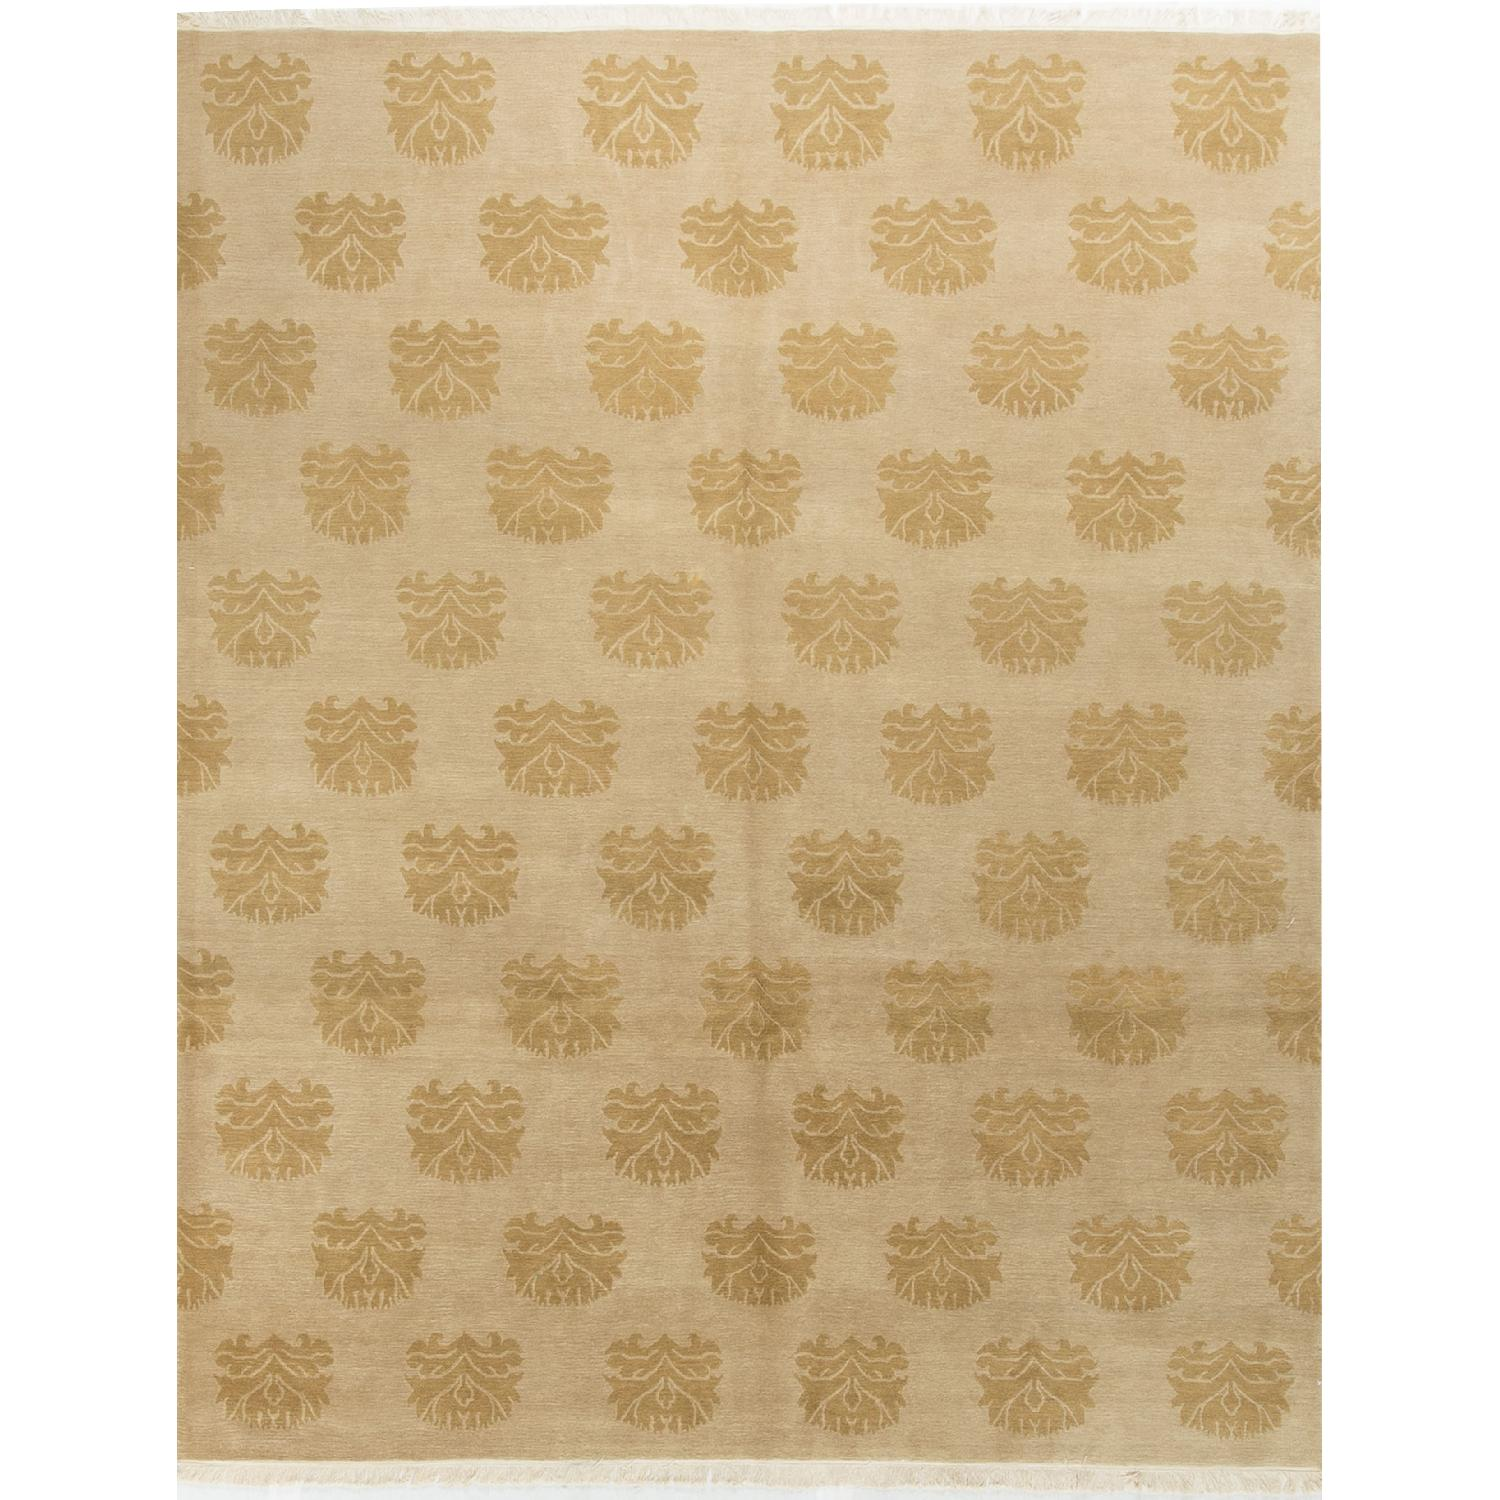 Modern Contemporary Hand Knotted Wool Rug in Beige - image-0